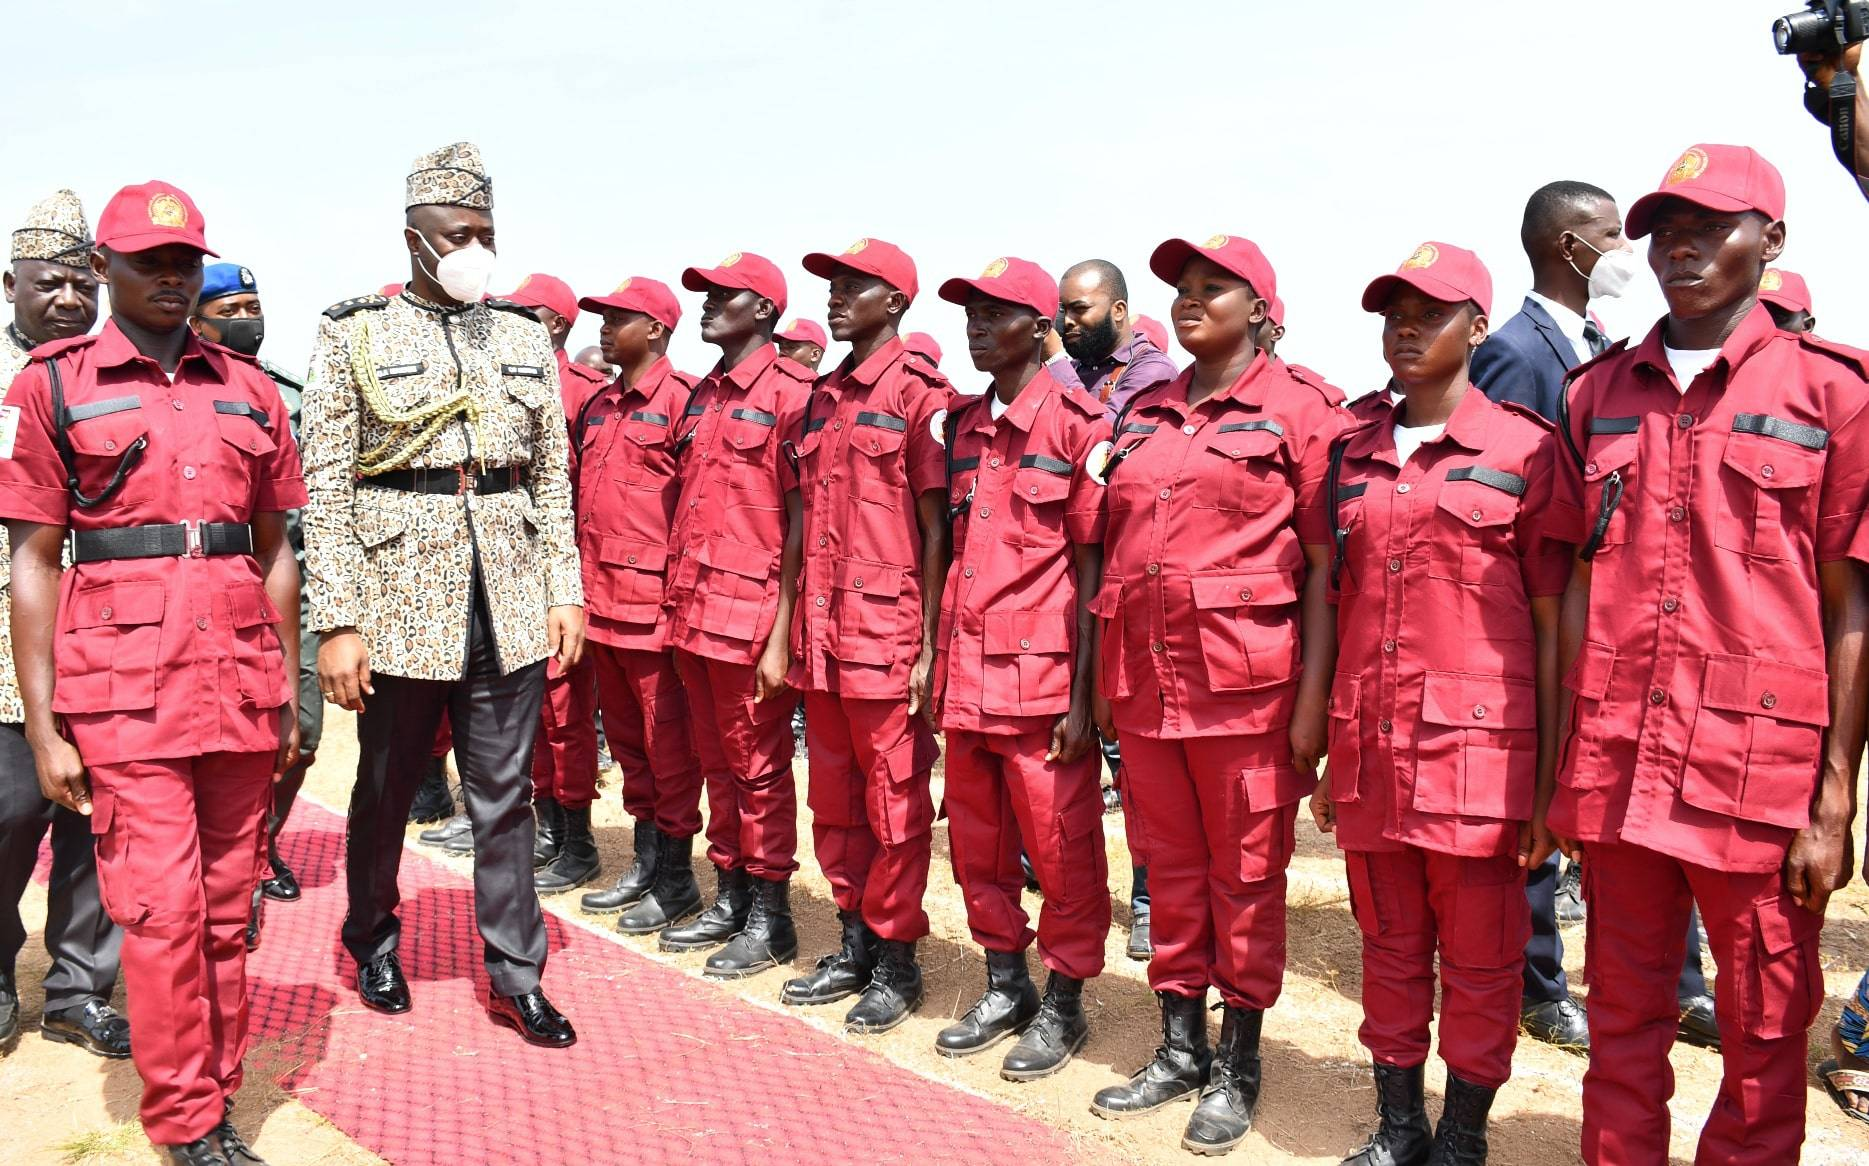 Oyo State Governor, Engr. Seyi Makinde (second right), inspecting the pioneer Corps of the Oyo State Security Network Agency (Amotekun Corps), during their passing-out ceremony held at the Emmanuel Alayande College of Education, Oyo. PHOTO: Oyo State Government